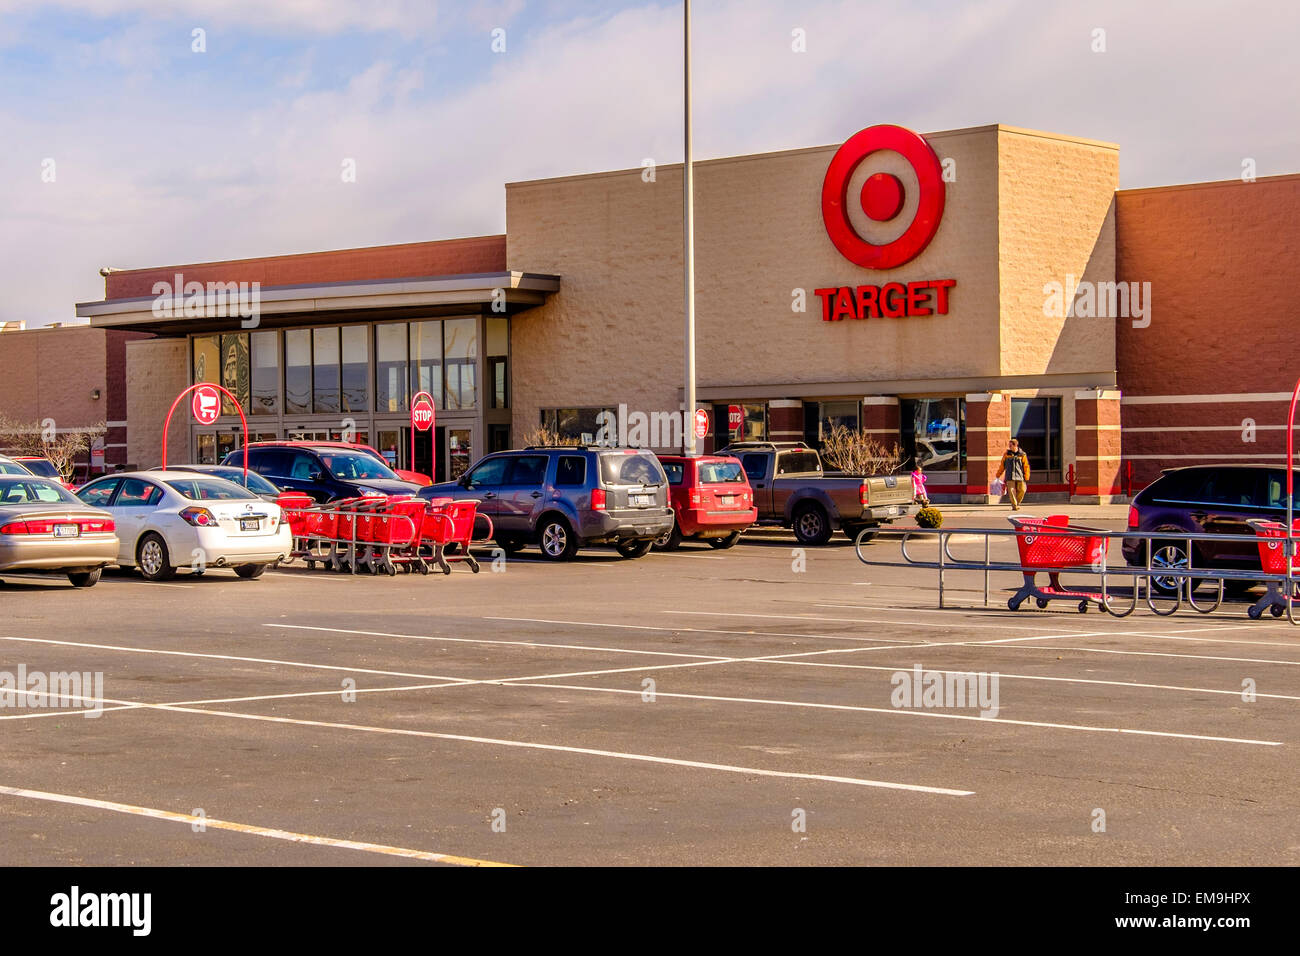 Target Usa Store Retail Stock Photos & Target Usa Store Retail Stock ...